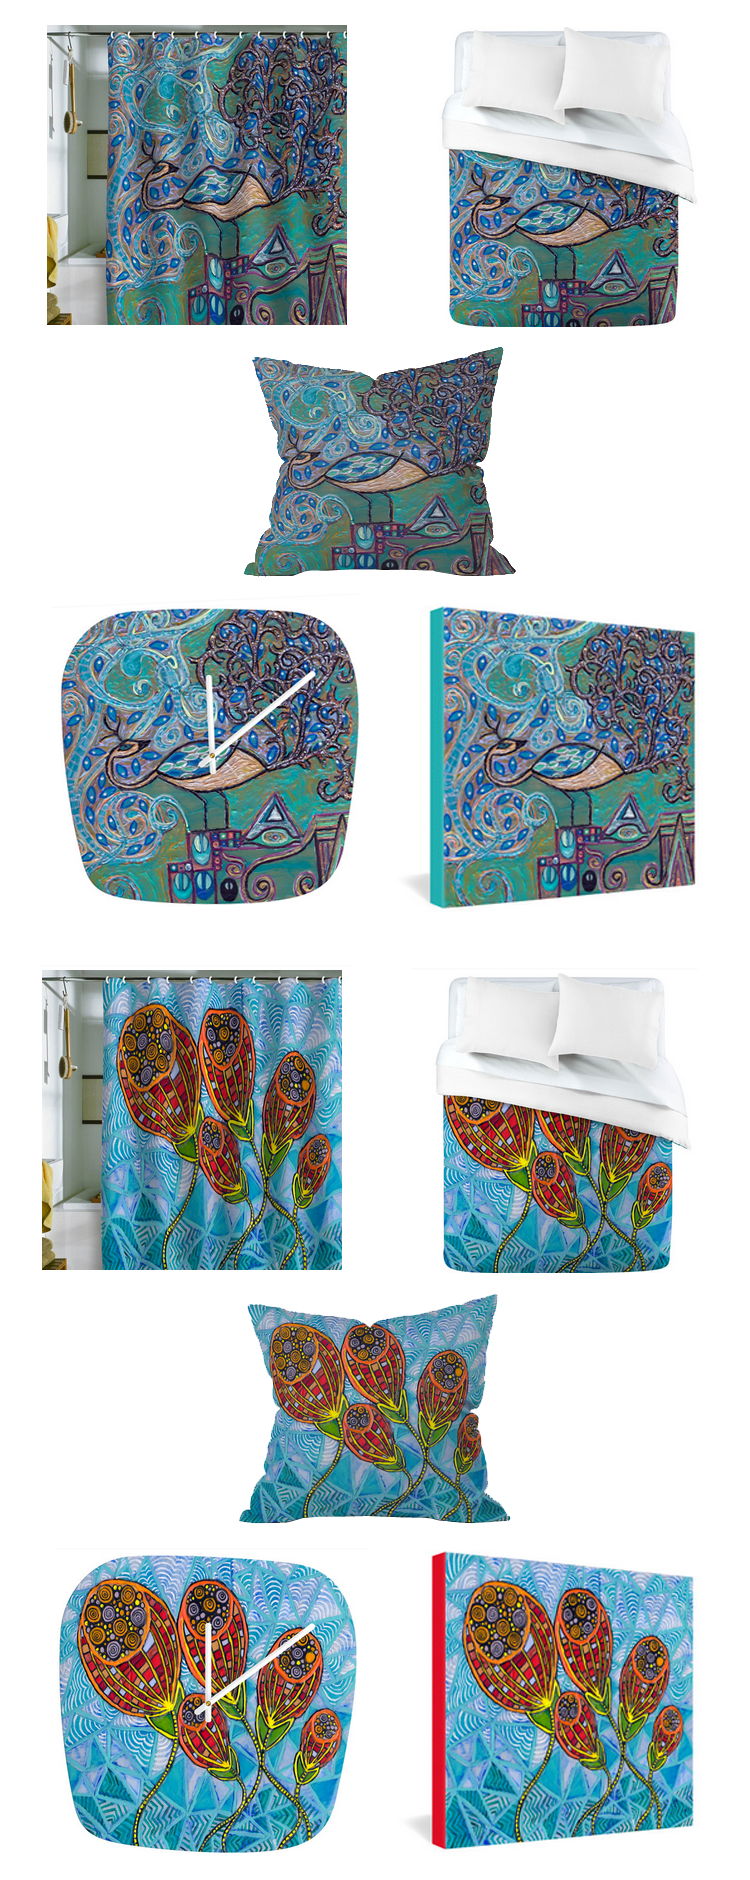 2 New Paintings Now Available On Home Decor Products At